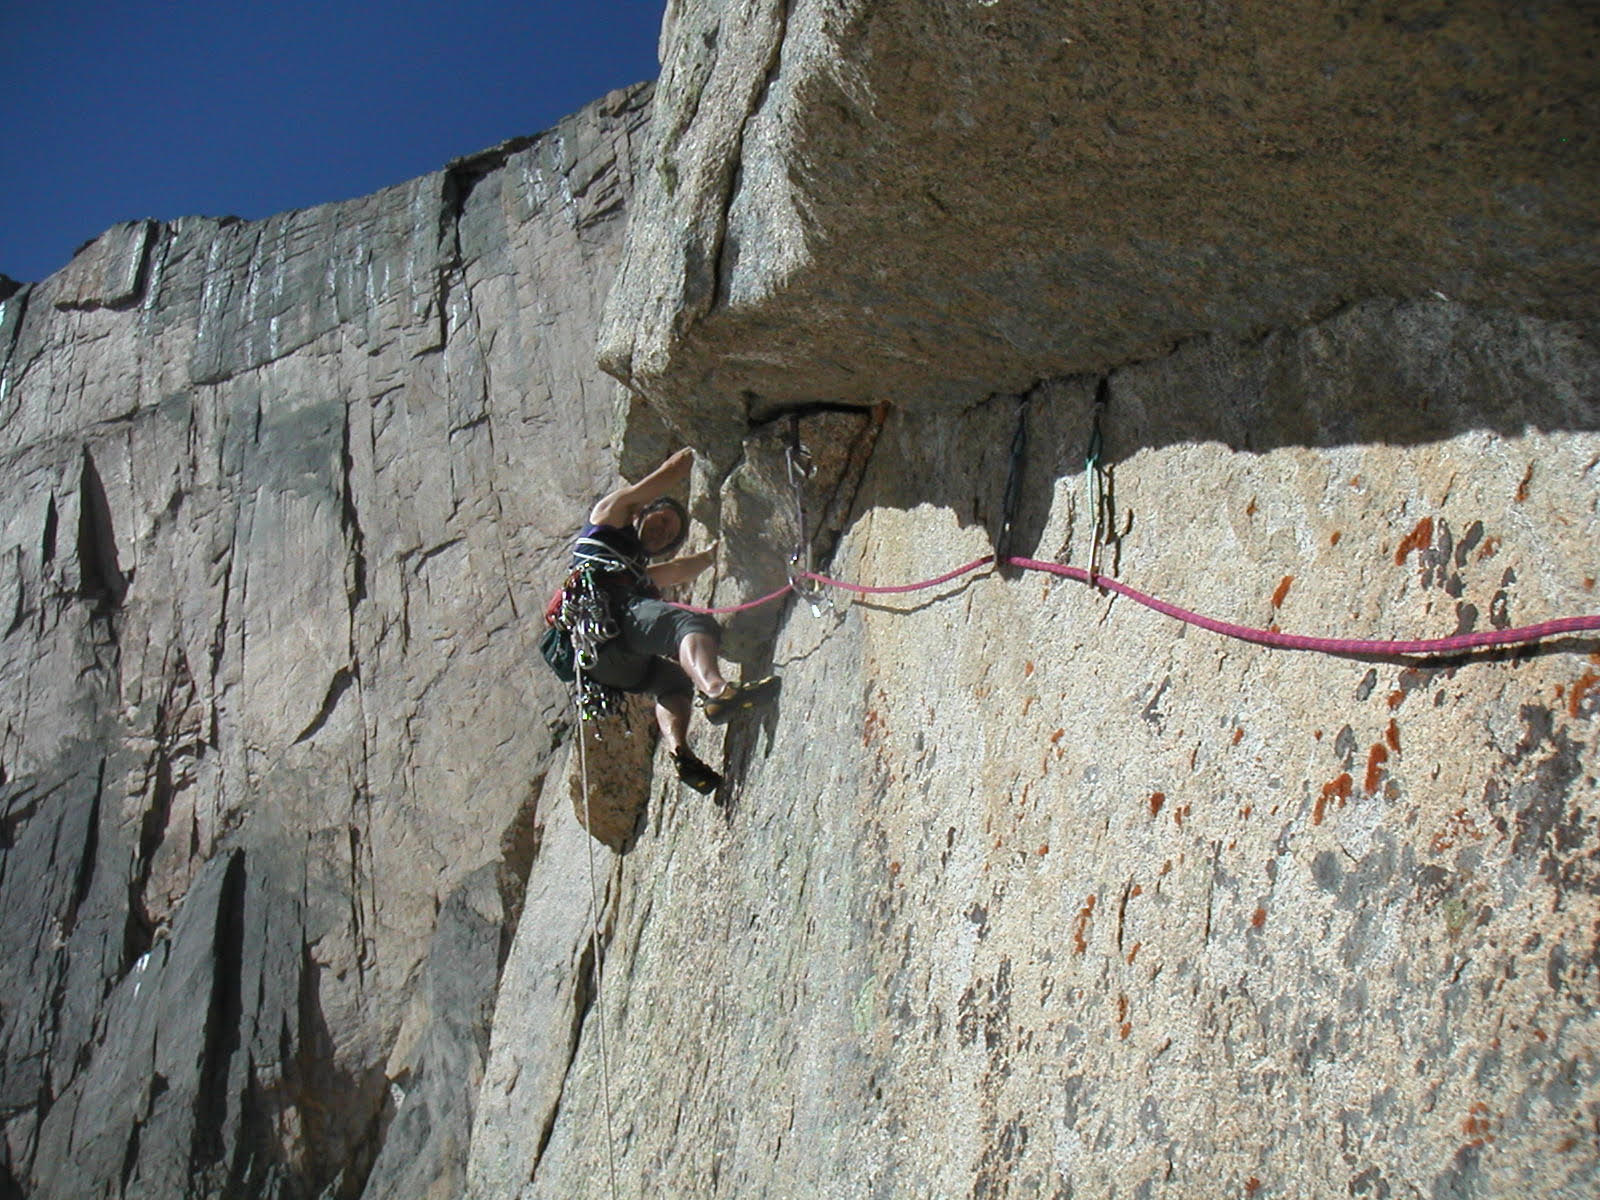 Chip Chace on Invisible Wall (IV 5.12a, 500'), Longs Peak. [Photo] Roger Briggs